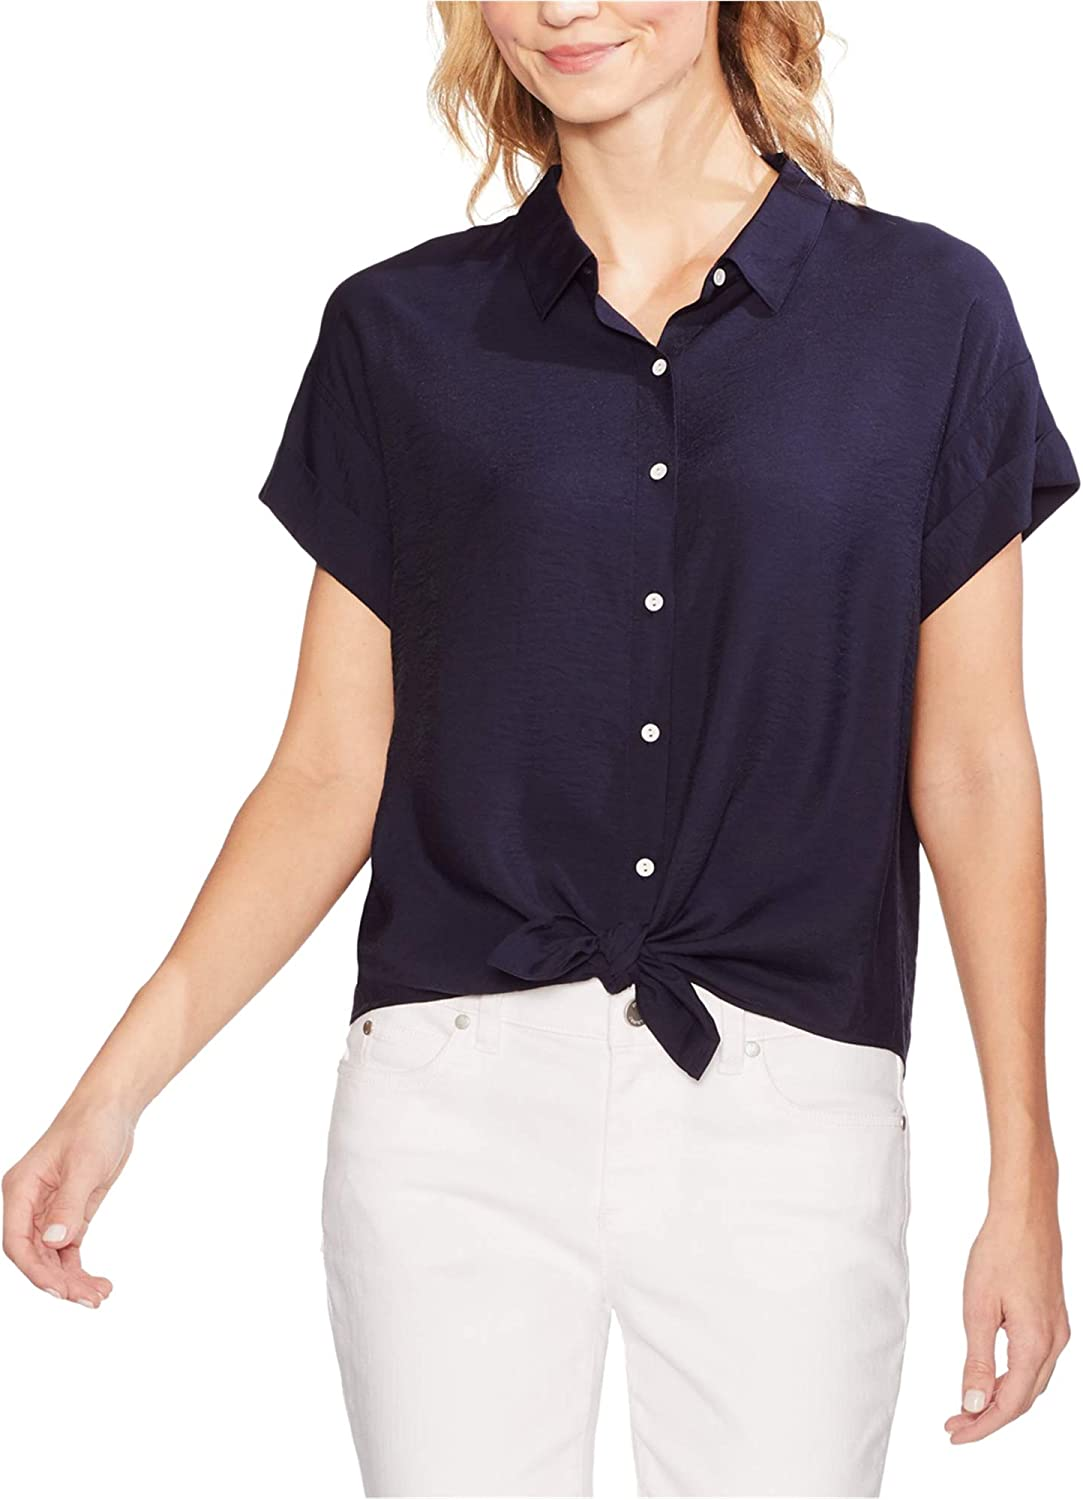 Vince Camuto Womens Knot Front Button Down Blouse, Blue, Large